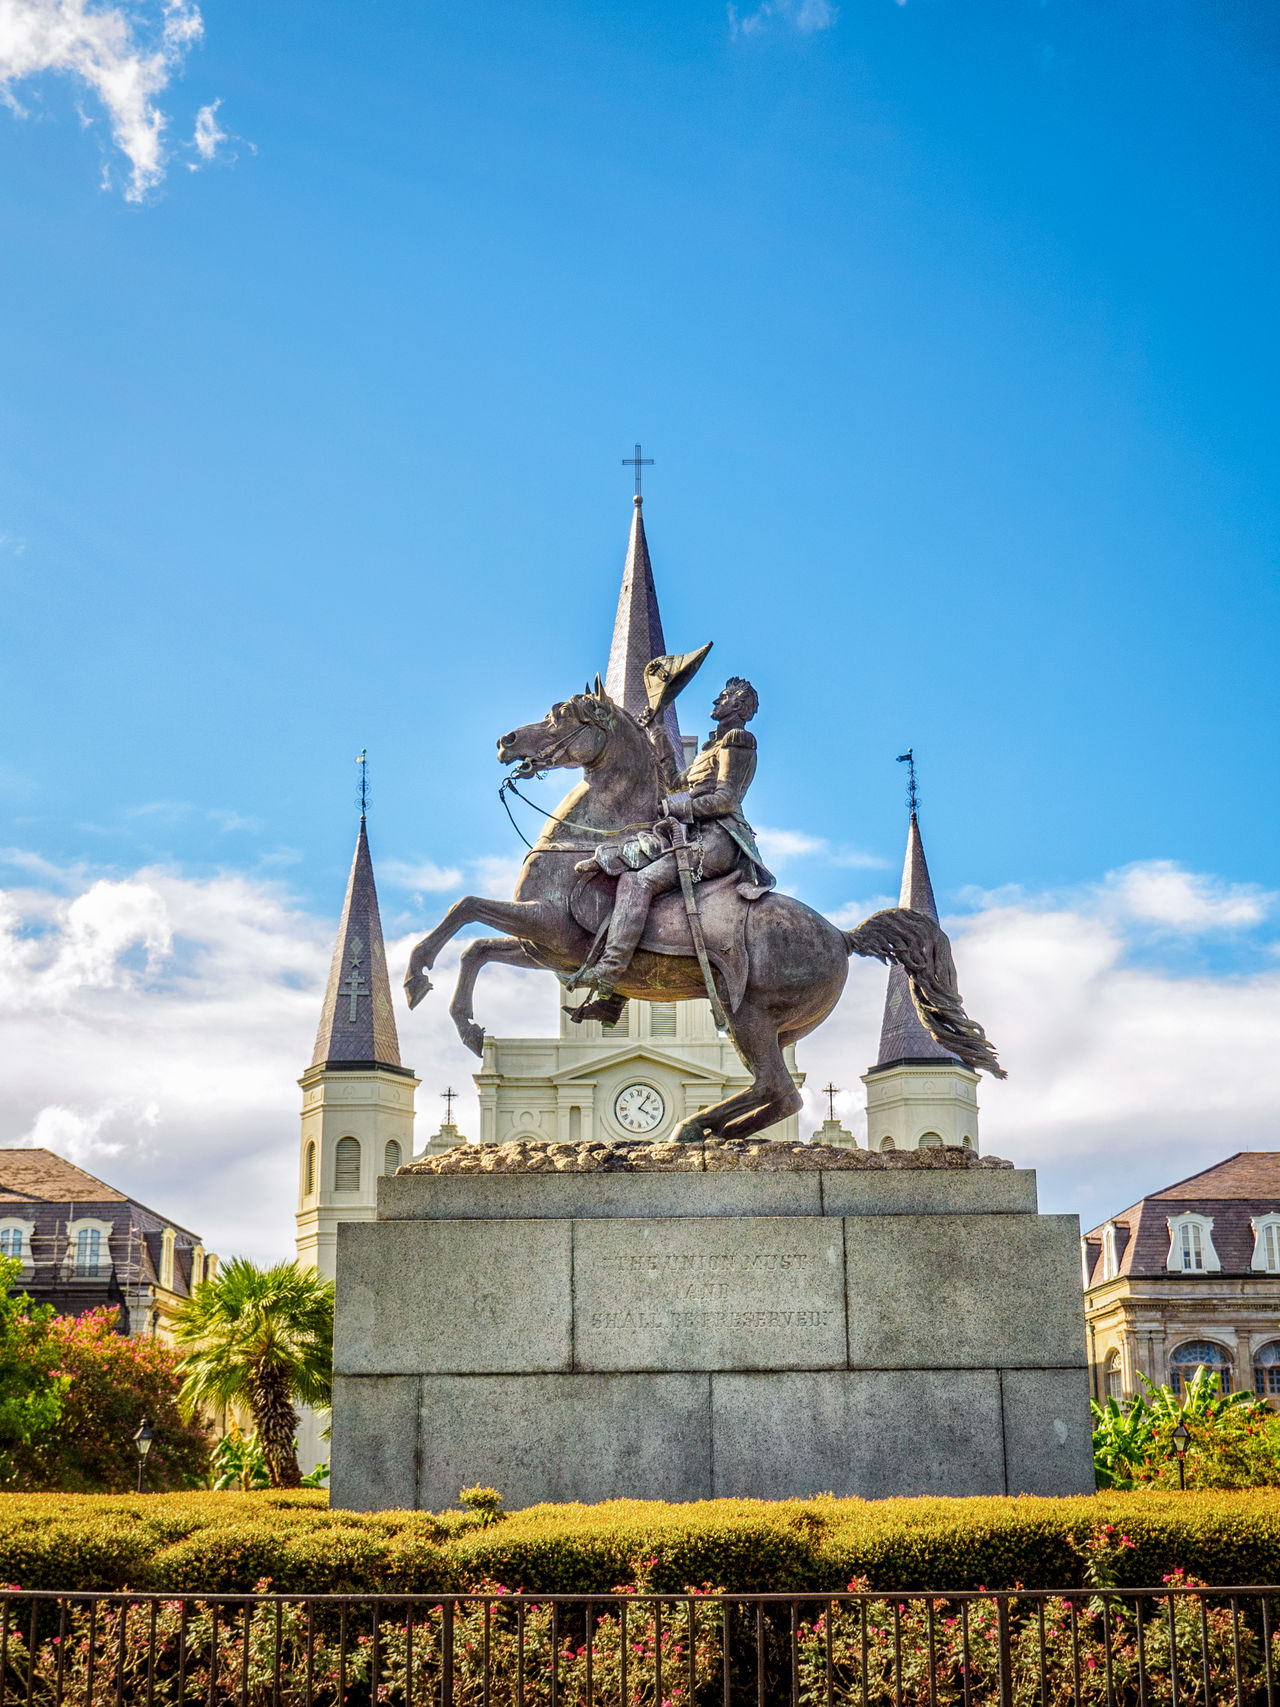 Statue of Andrew Jackson on a Horse in front of St. Louis Cathedral 1 Architecture Blue Bridge - Man Made Structure Building Exterior City Cityscape Day French Quarter Gold Gold Colored Jackson Square New Orleans, LA No People Outdoors Sky St. Louis Cathedral Statue Travel Destinations Tree